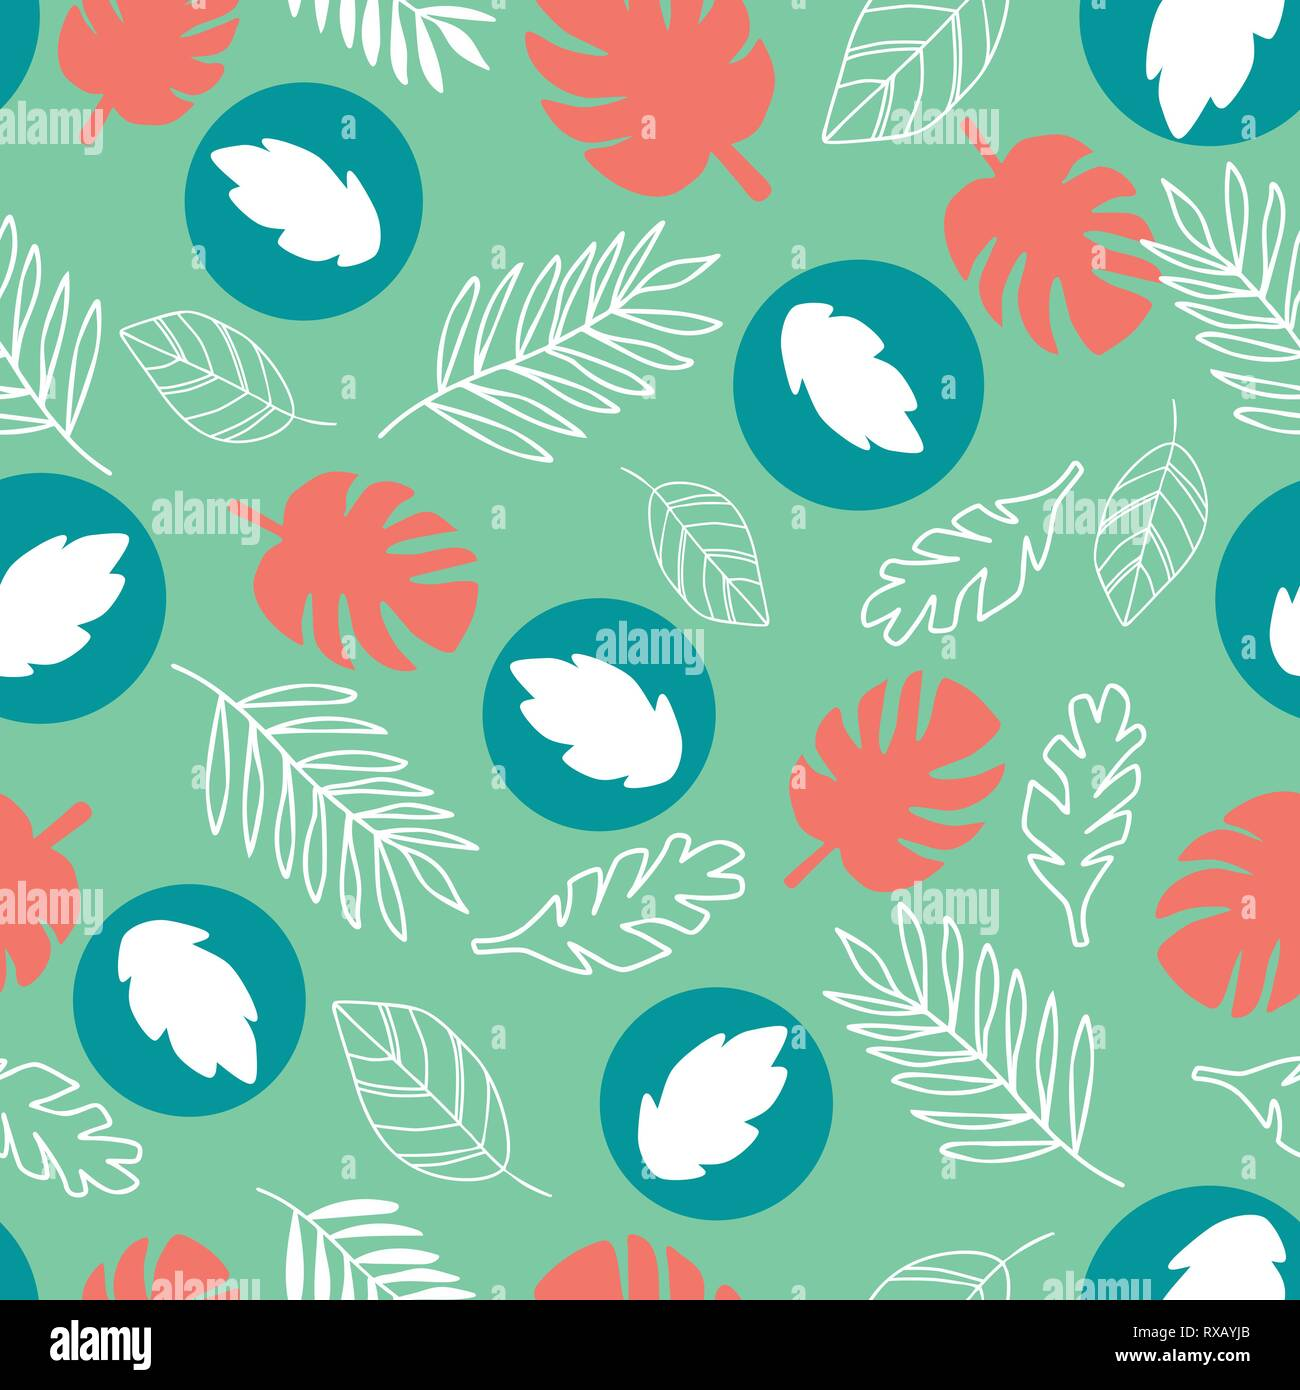 Exotic leaves on a green background. Tropical pattern with banana leaves. Stock Vector